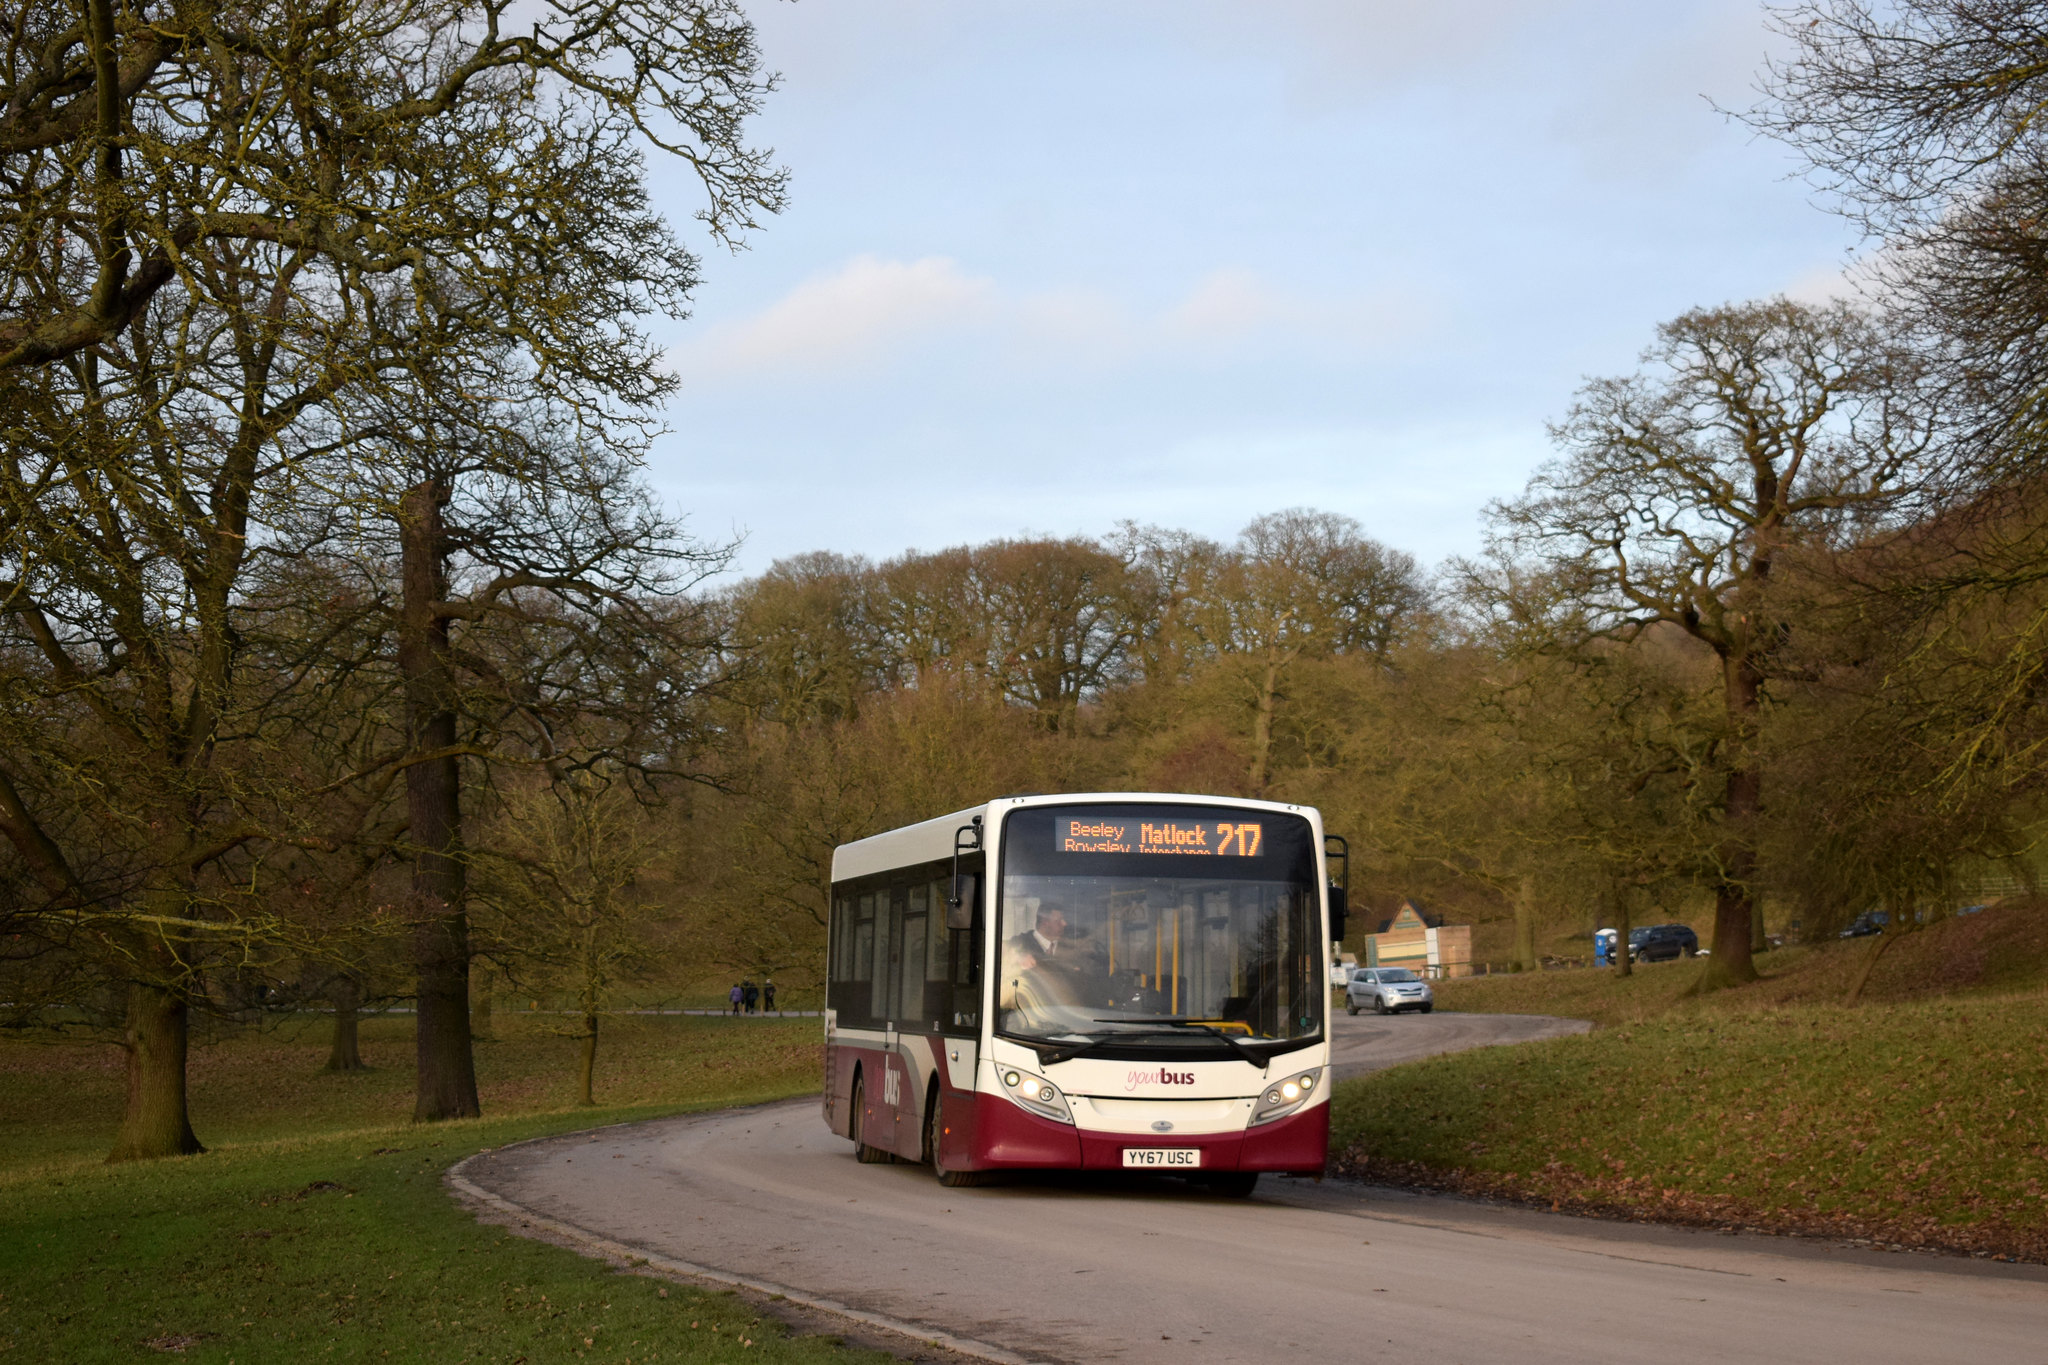 #AYearOfBuses 217: Matlock – Chatsworth